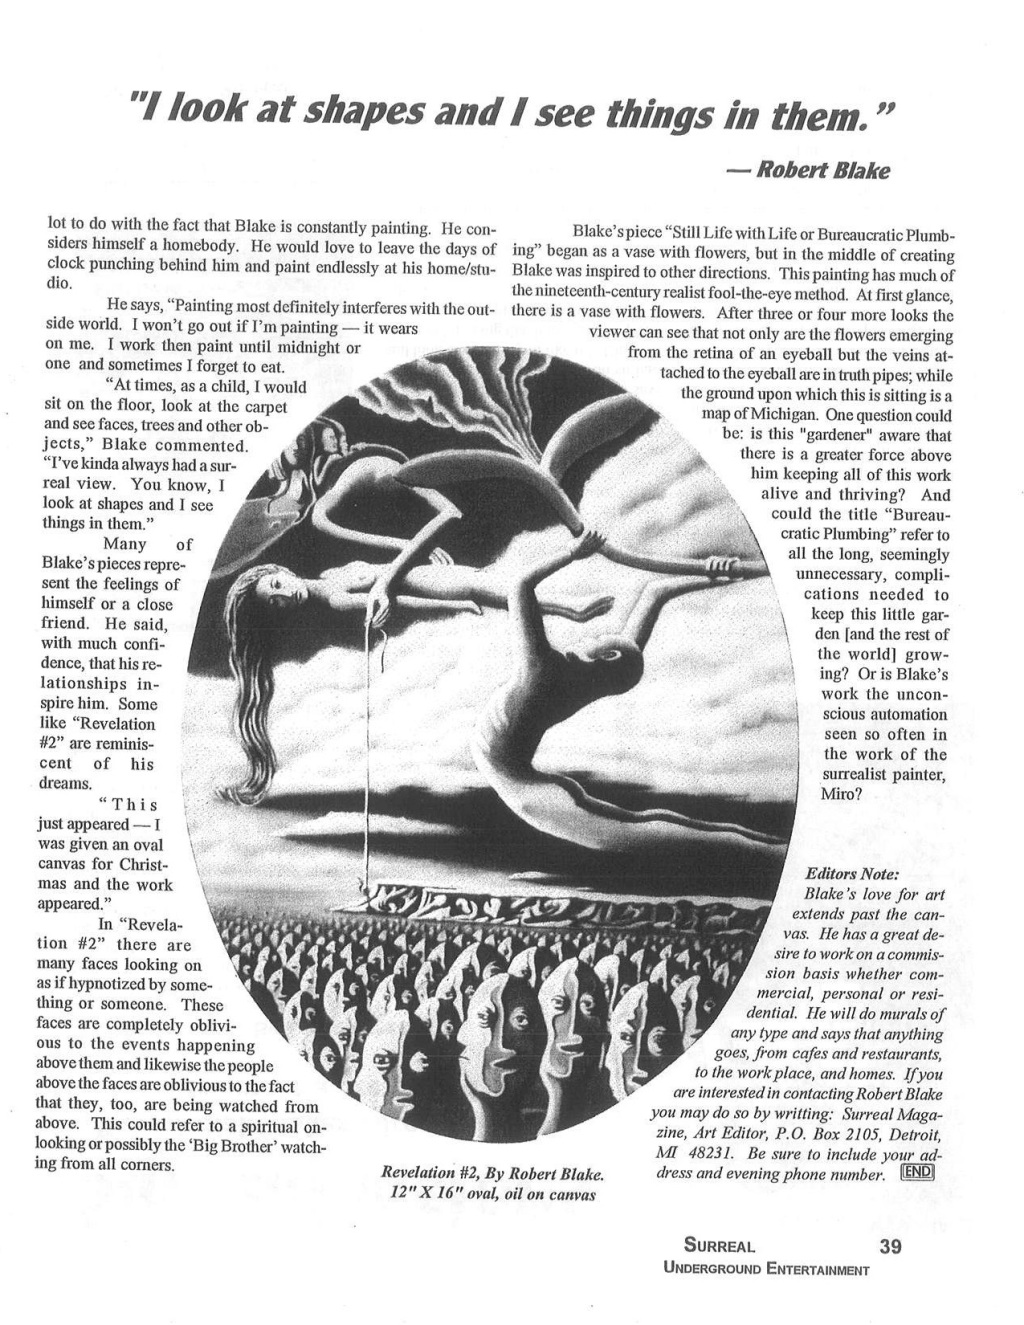 robertblakevisions_surreal_page2